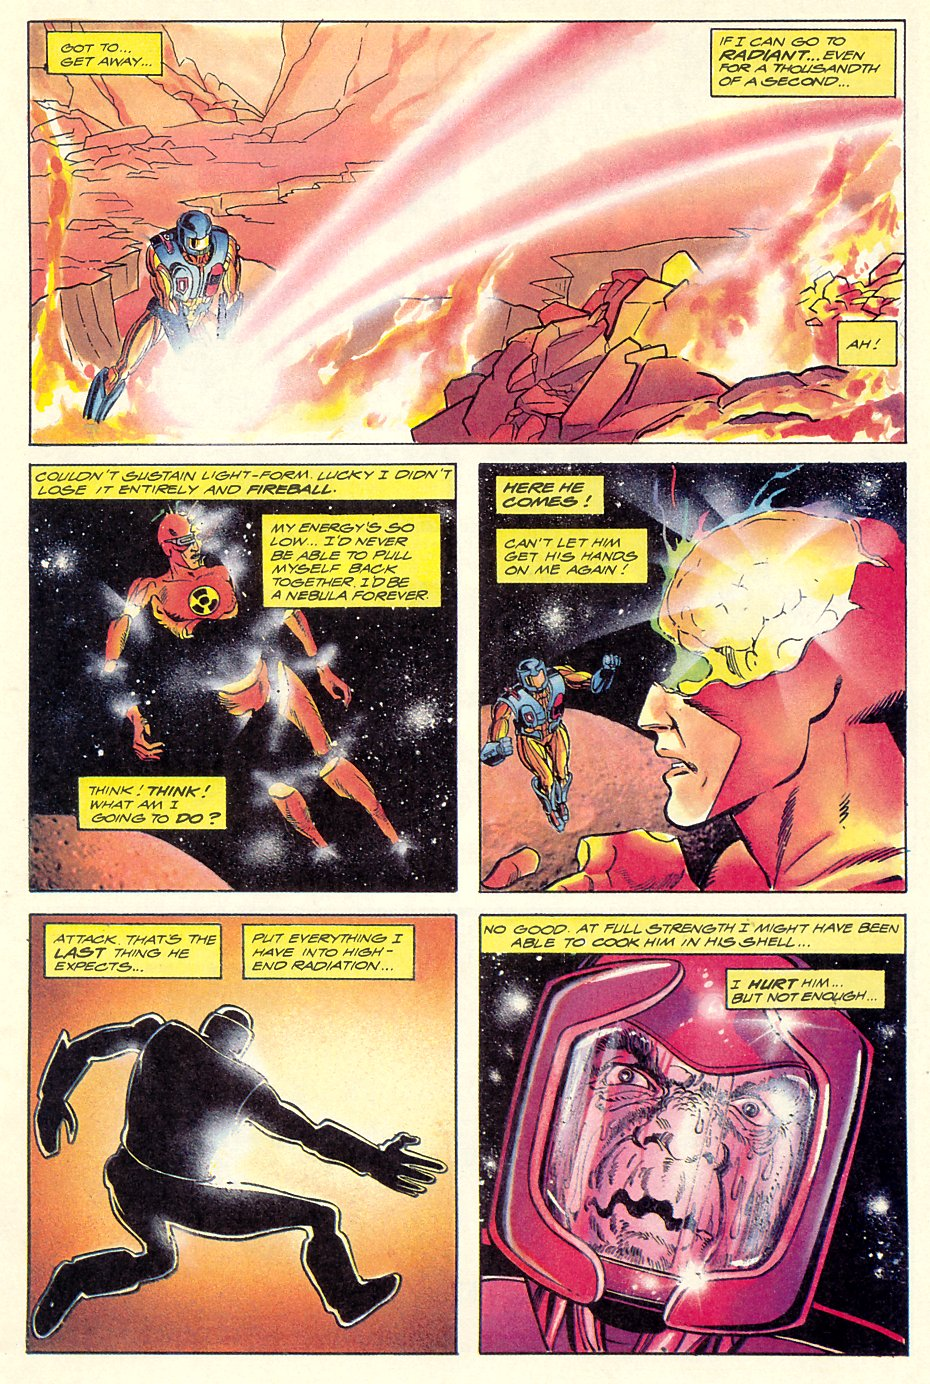 Read online Solar, Man of the Atom comic -  Issue #7 - 15